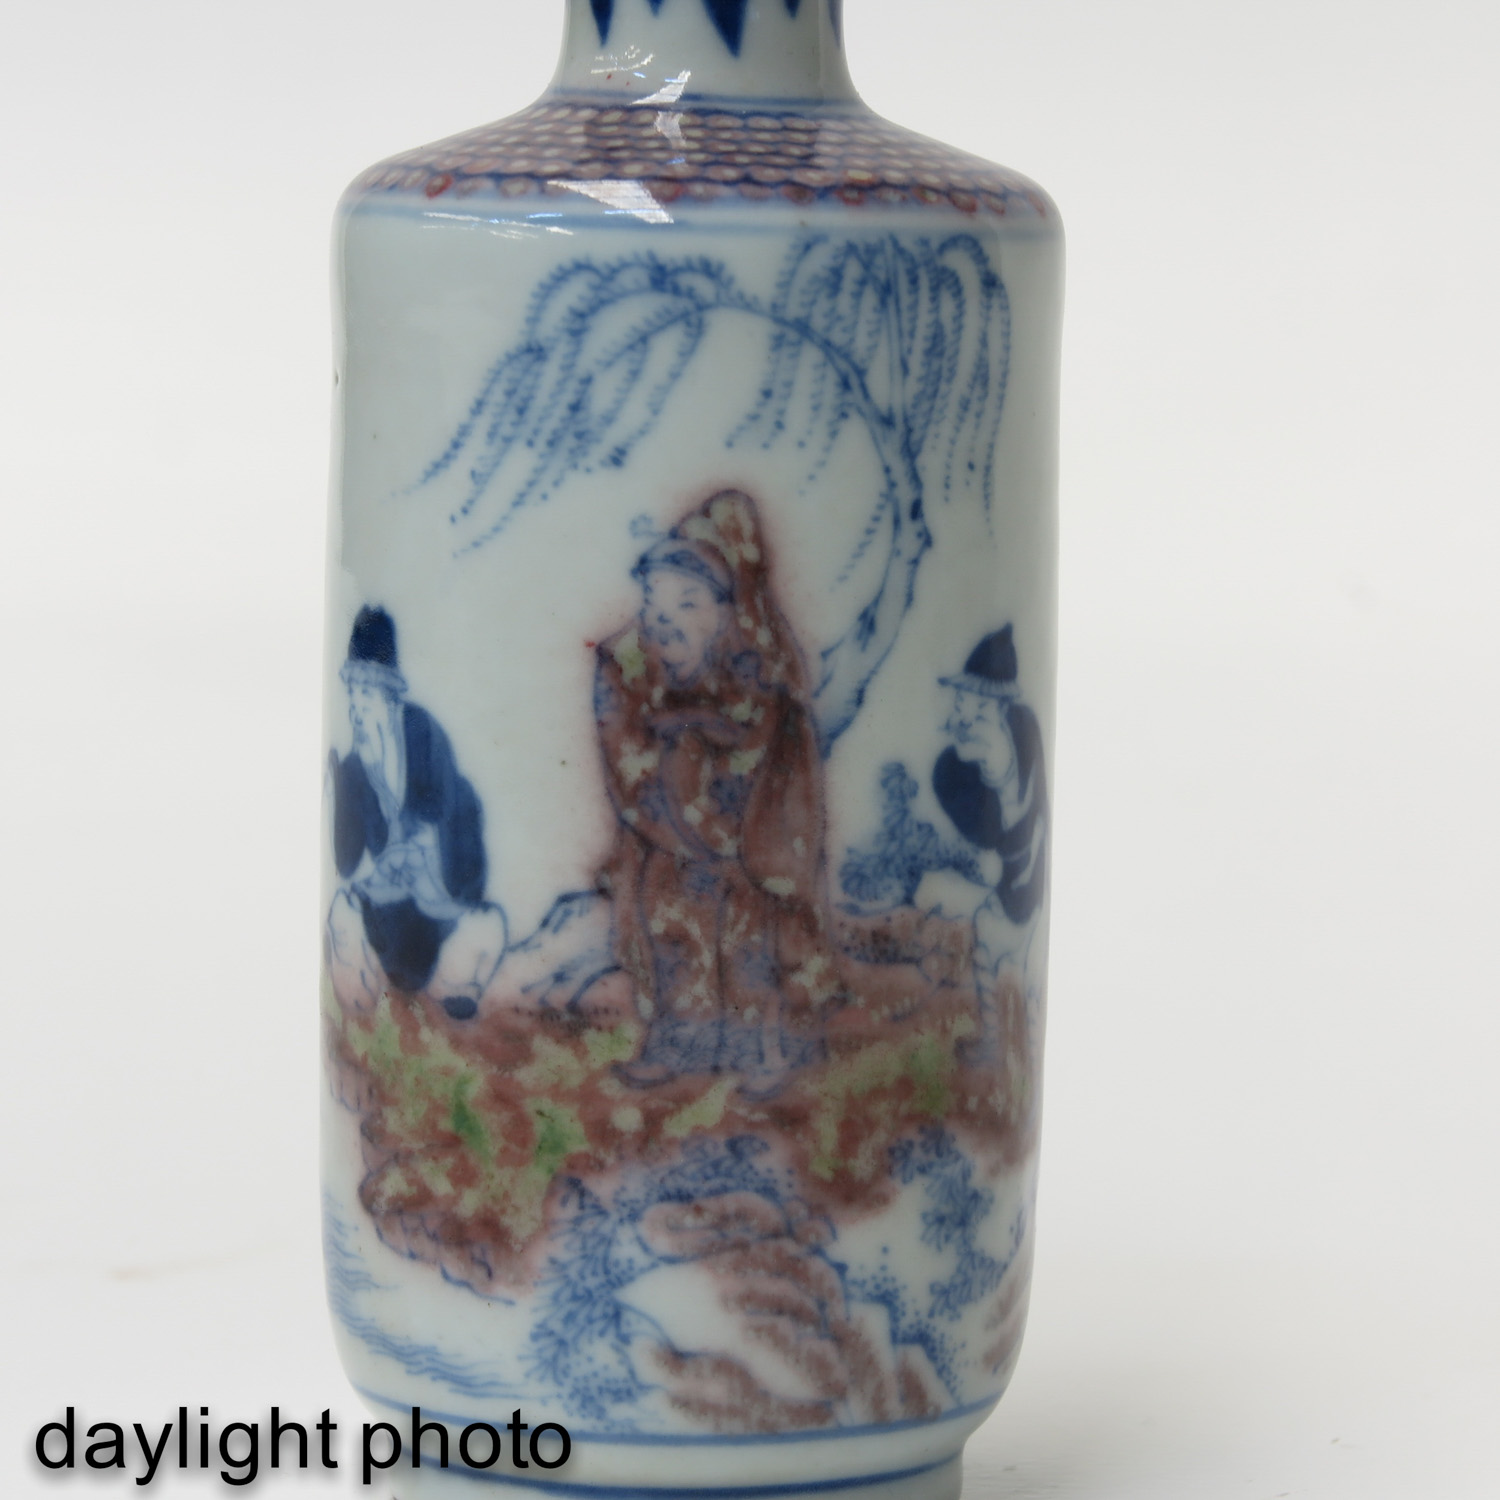 A Collection of 4 Miniature Vases - Image 10 of 10